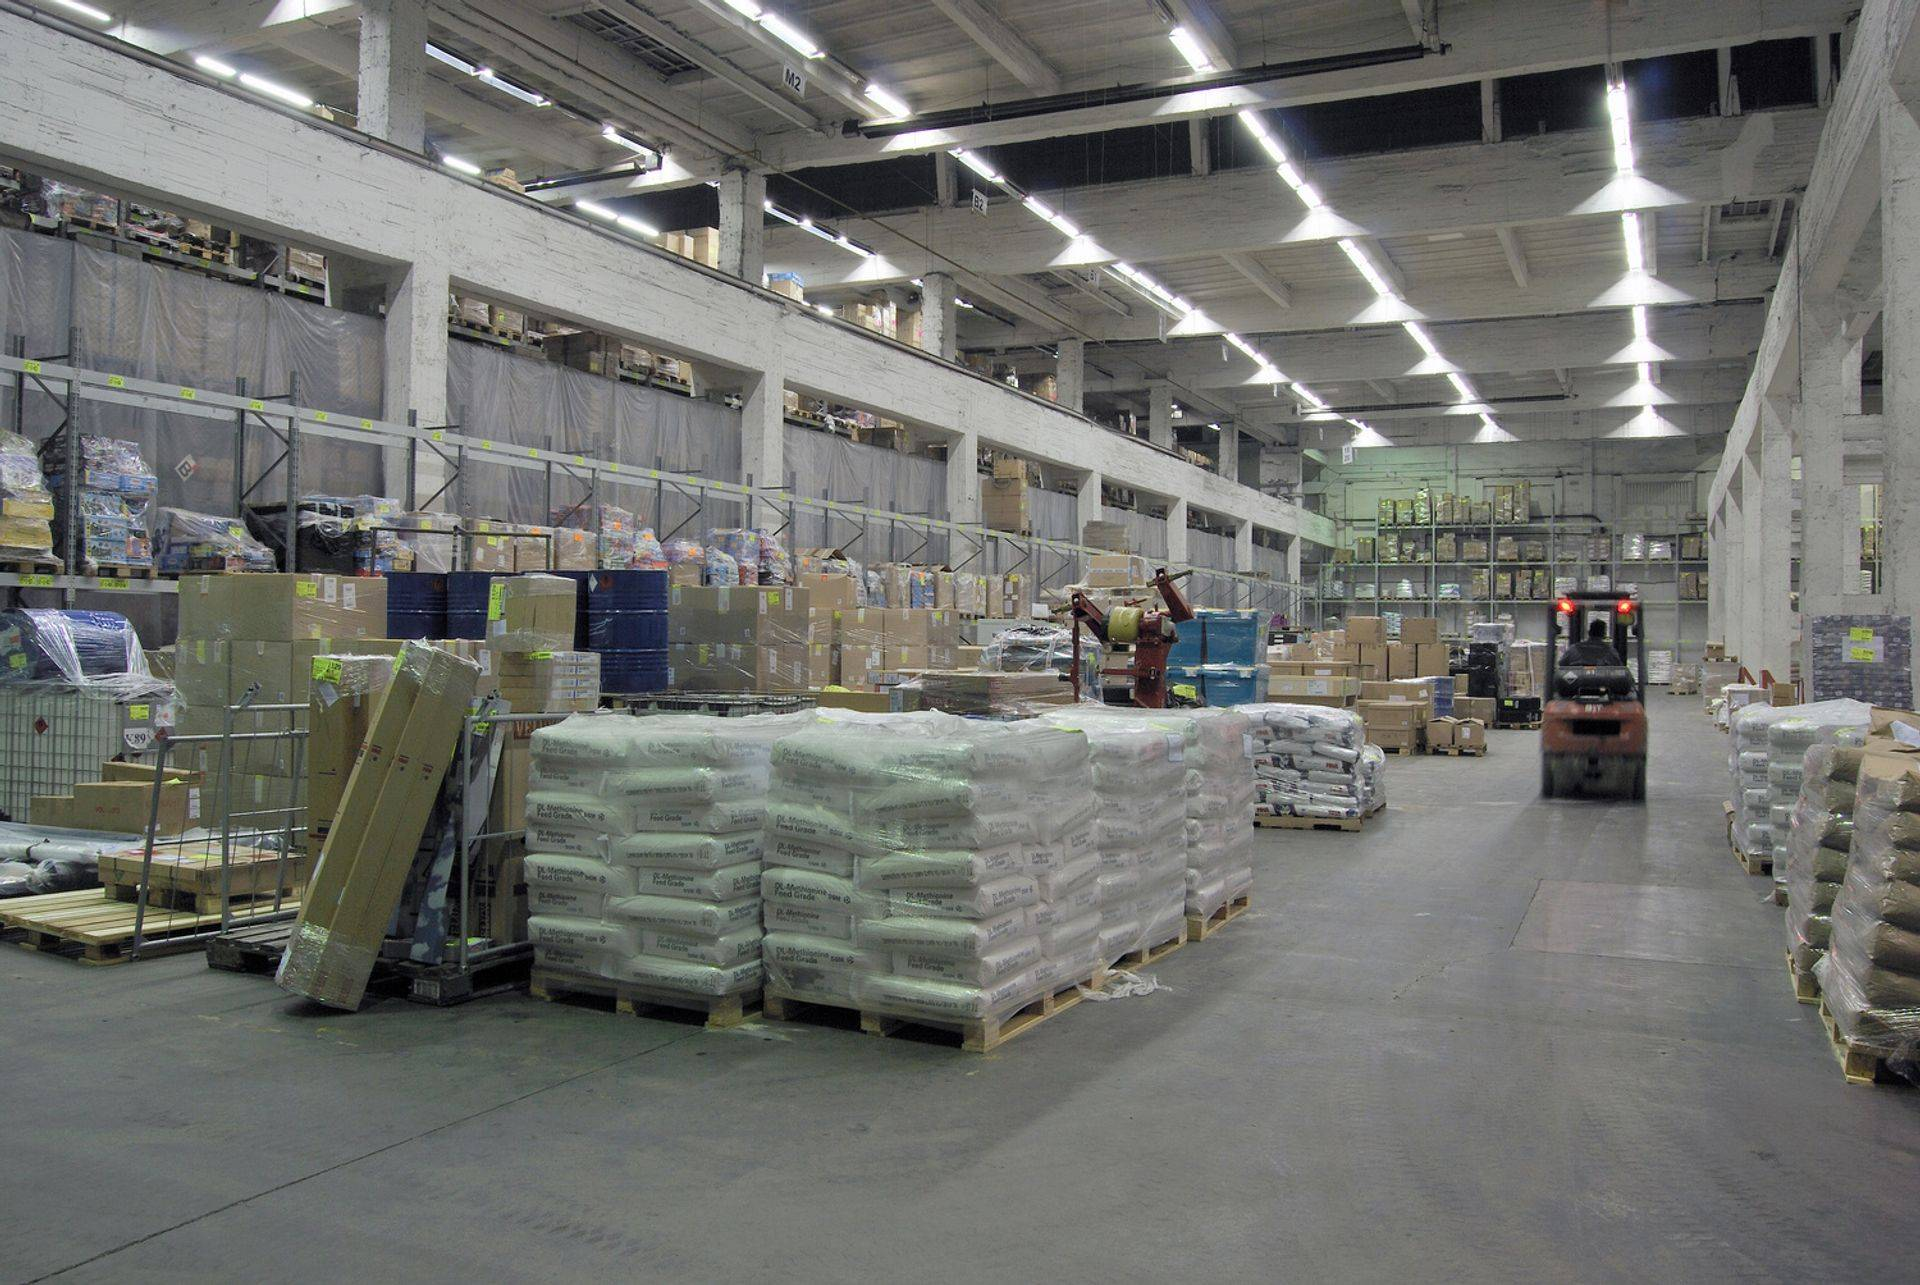 Warehouse for temporary storage.